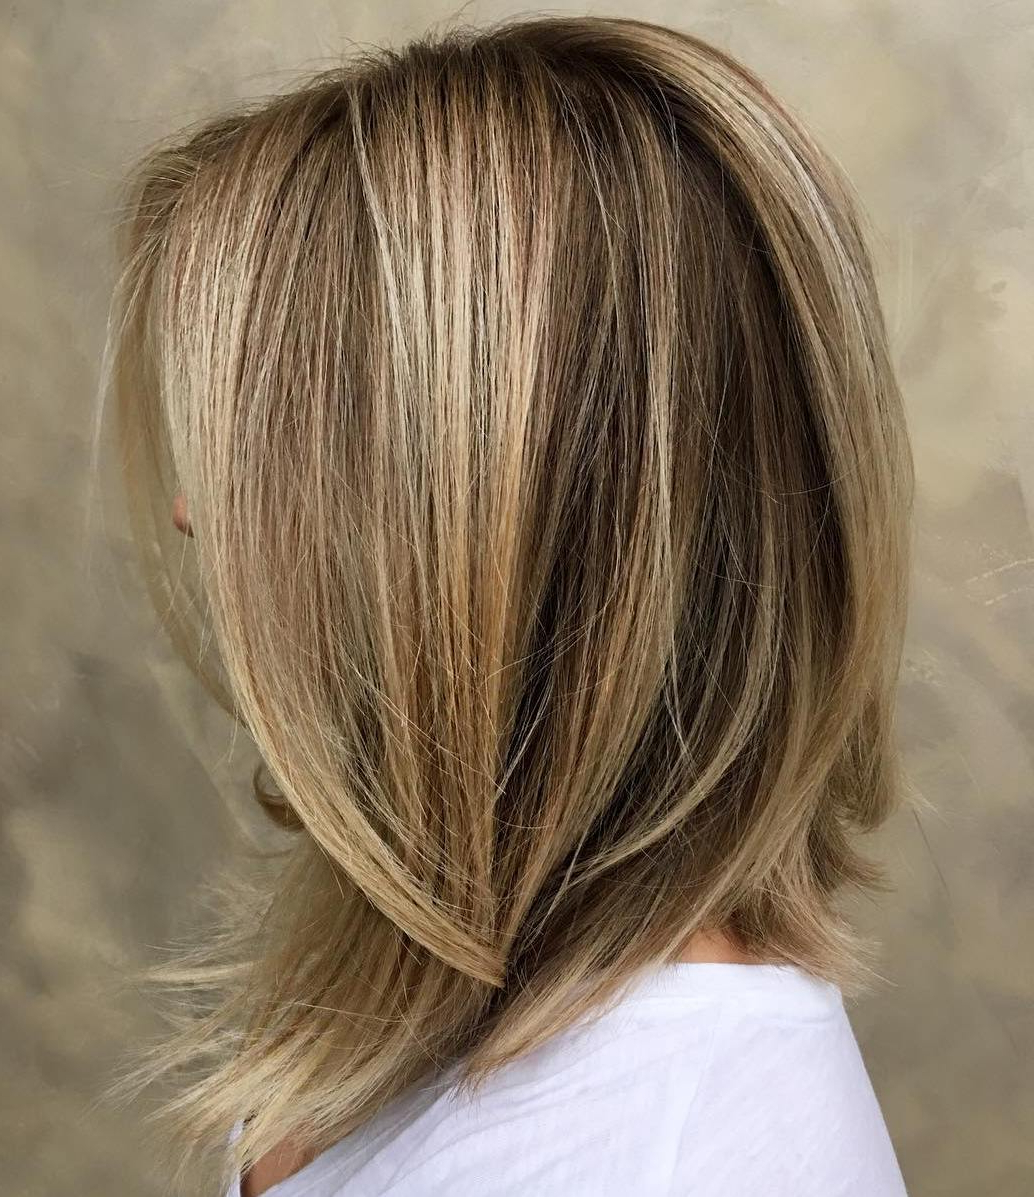 60 Inspiring Long Bob Hairstyles And Long Bob Haircuts For 2019 In Recent Wavy Lob Hairstyles With Face Framing Highlights (Gallery 14 of 20)